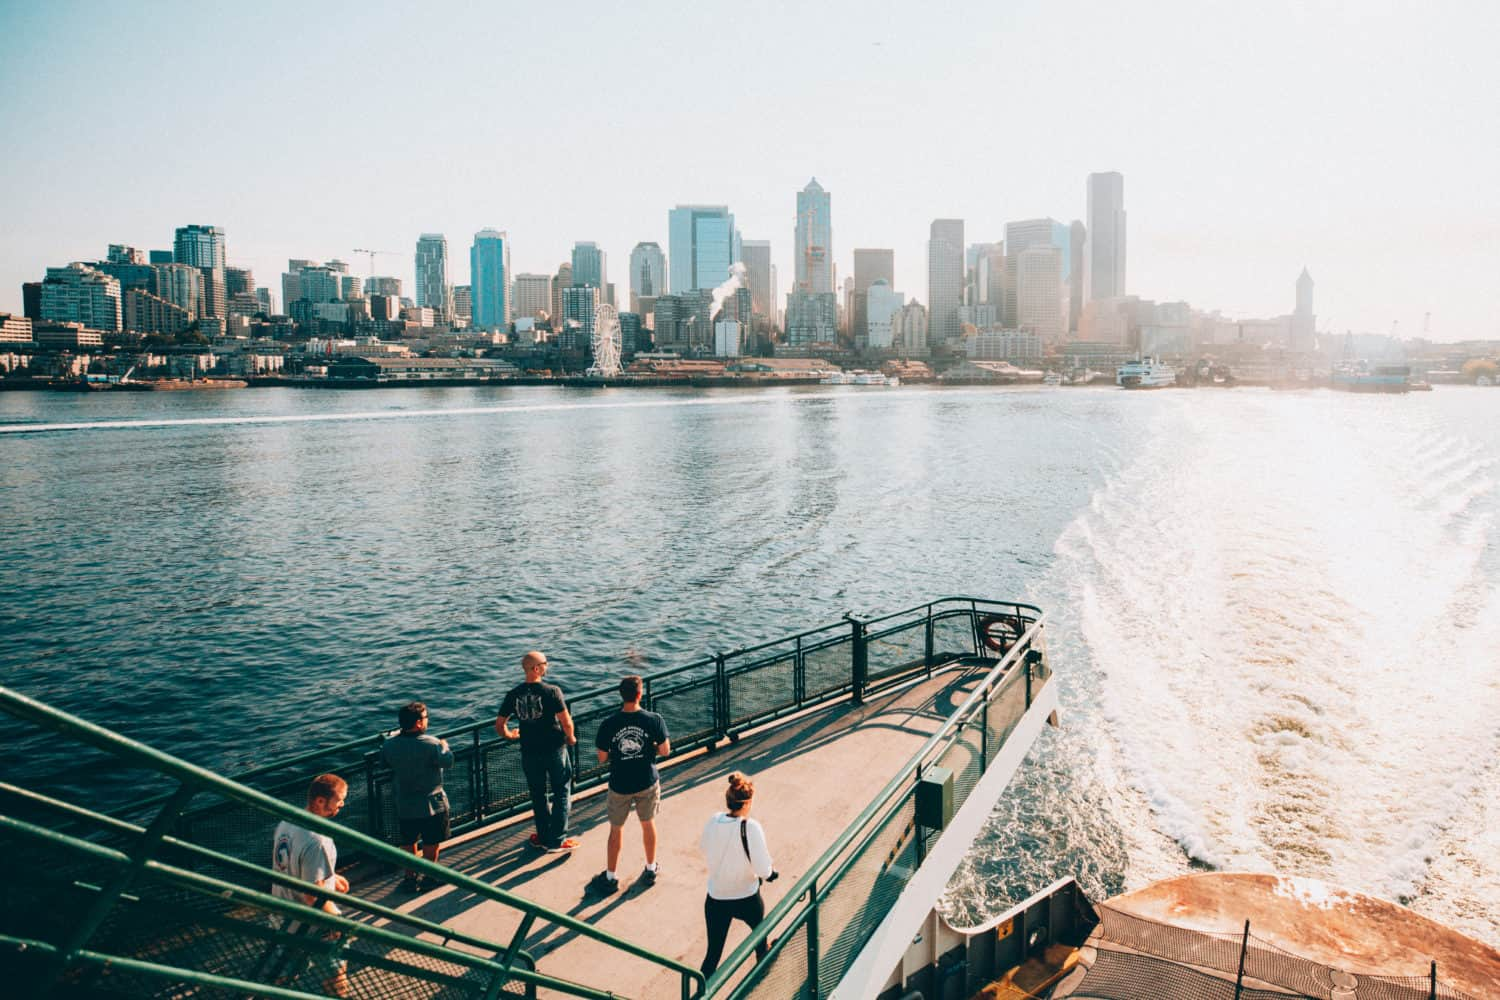 Things To Do In The Pacific Northwest - Riding a Ferry in Seattle